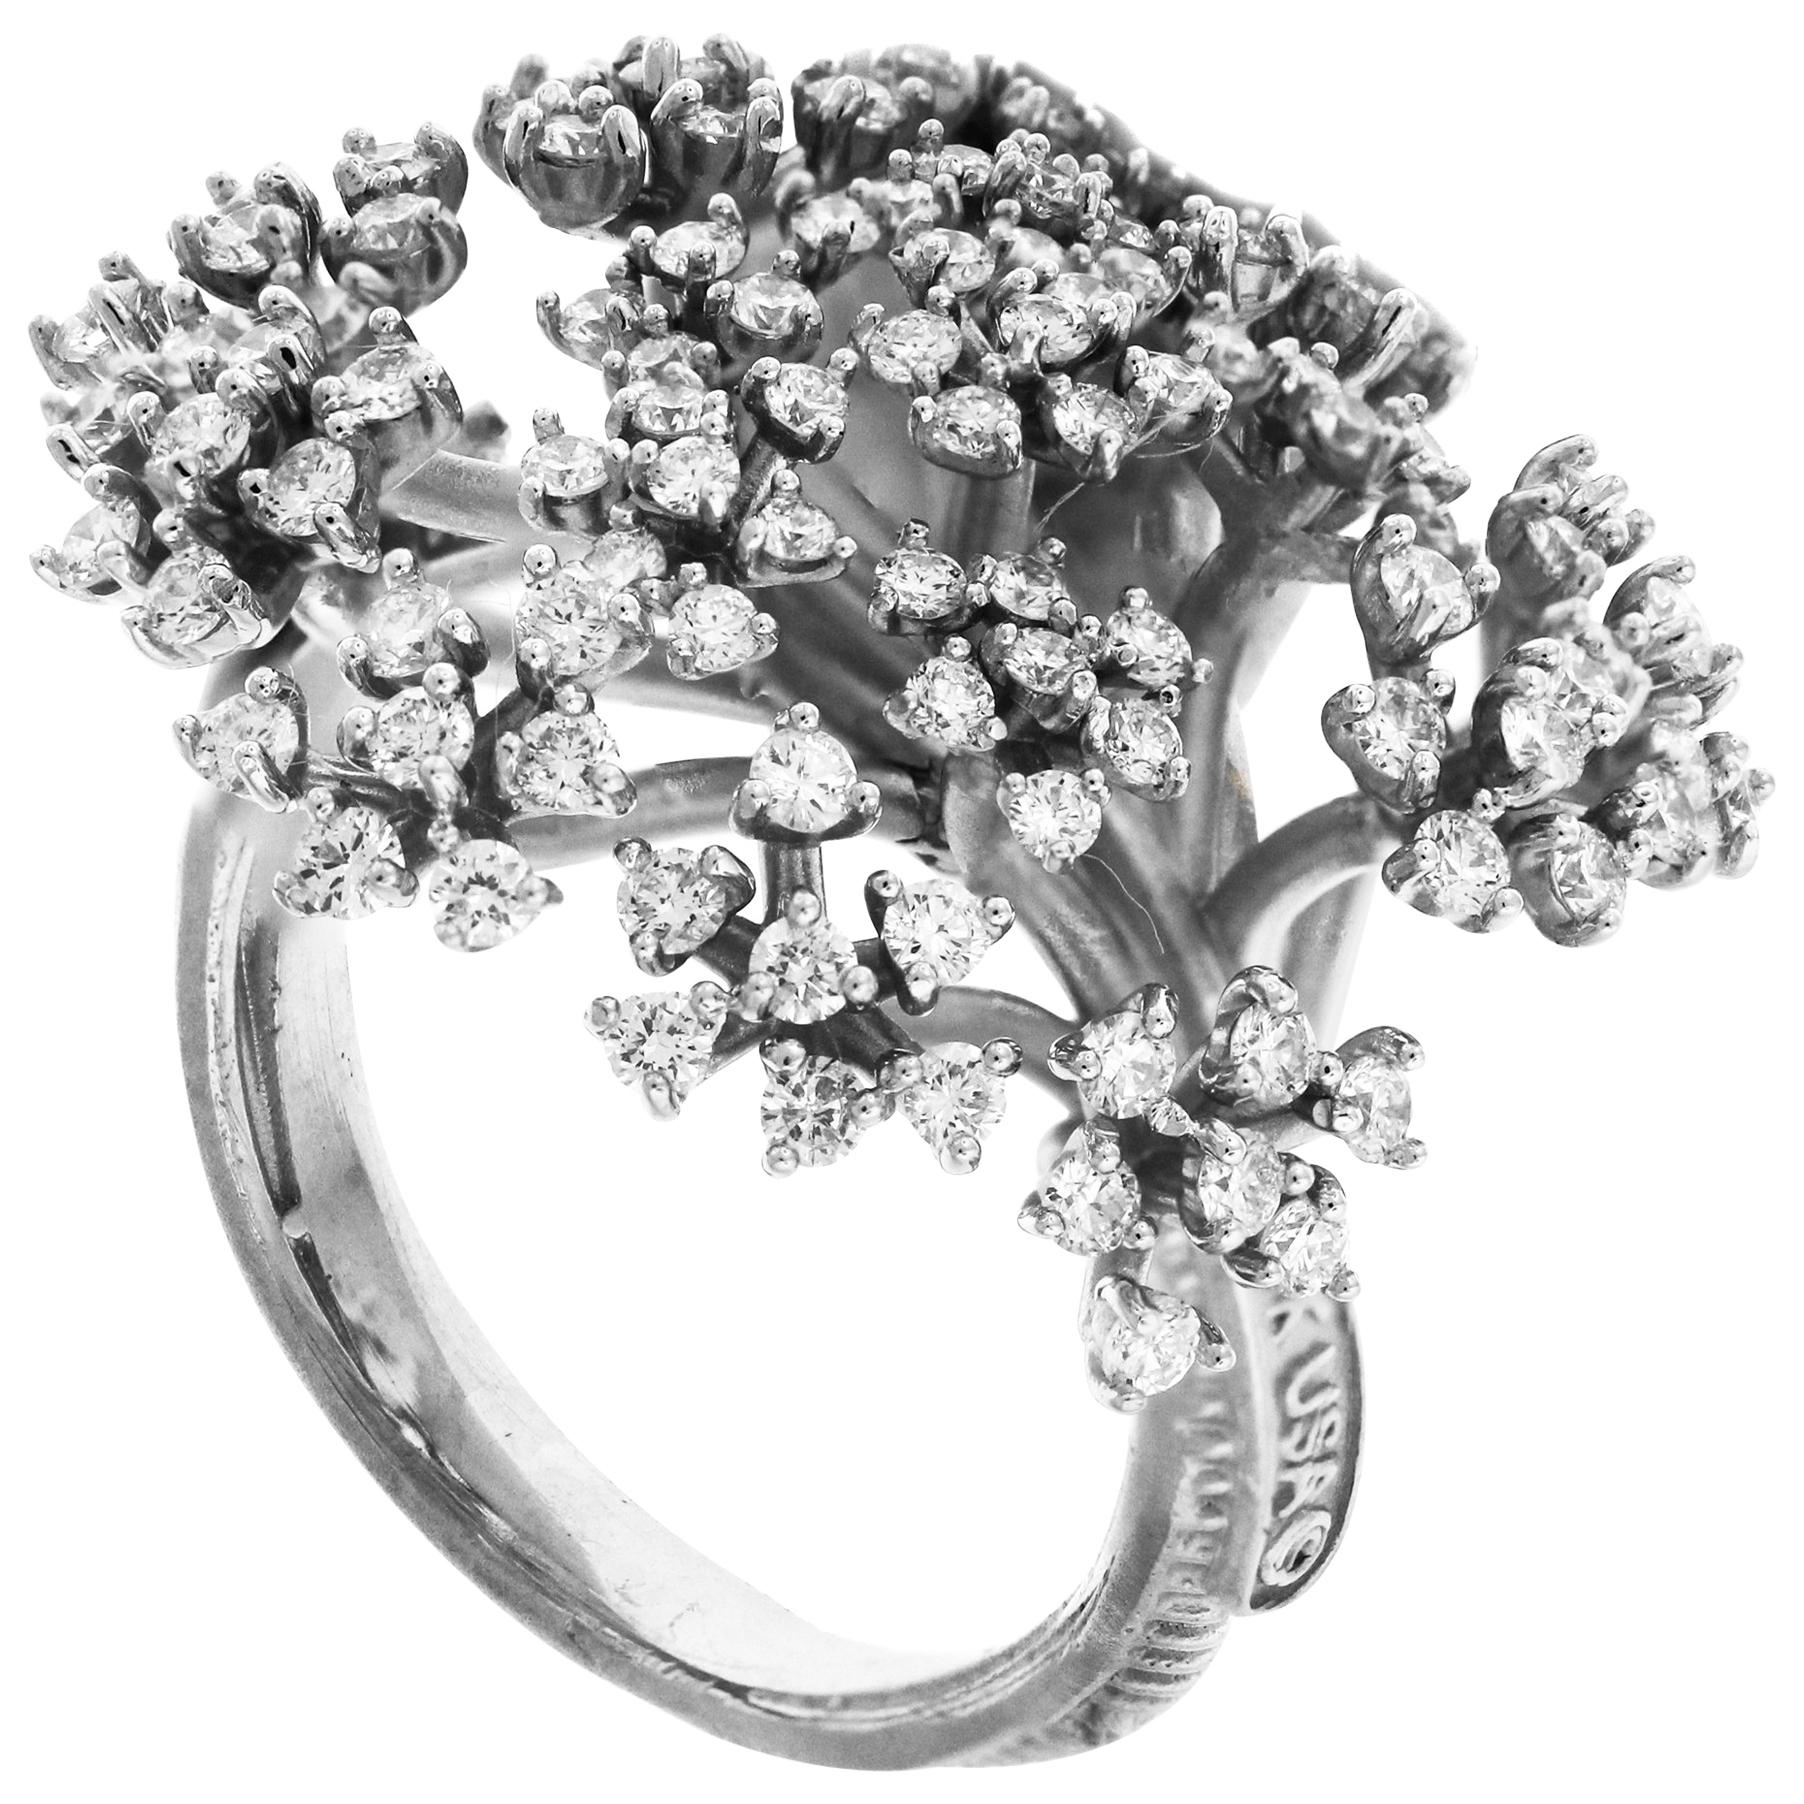 White Gold and Diamond Cocktail Ring Stambolian